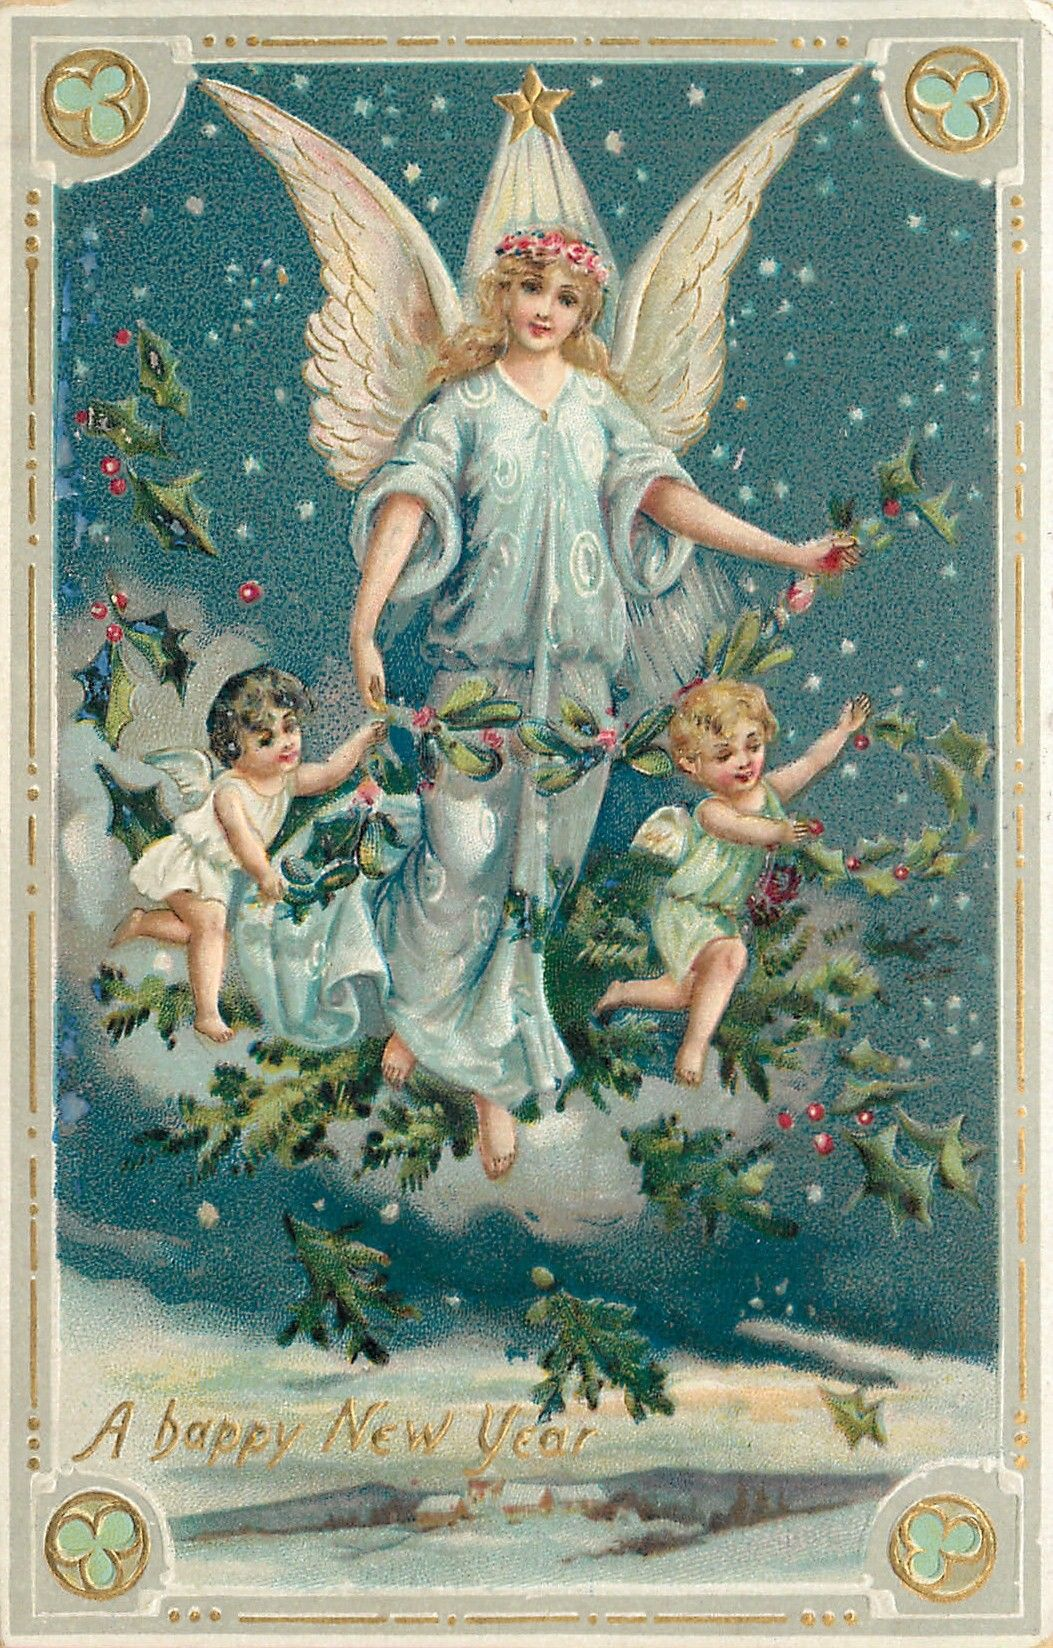 A Happy New Year (1909. Gilt, embossed) Angel in blue robe holds holly on cloud in sky, between 2 cherubs.